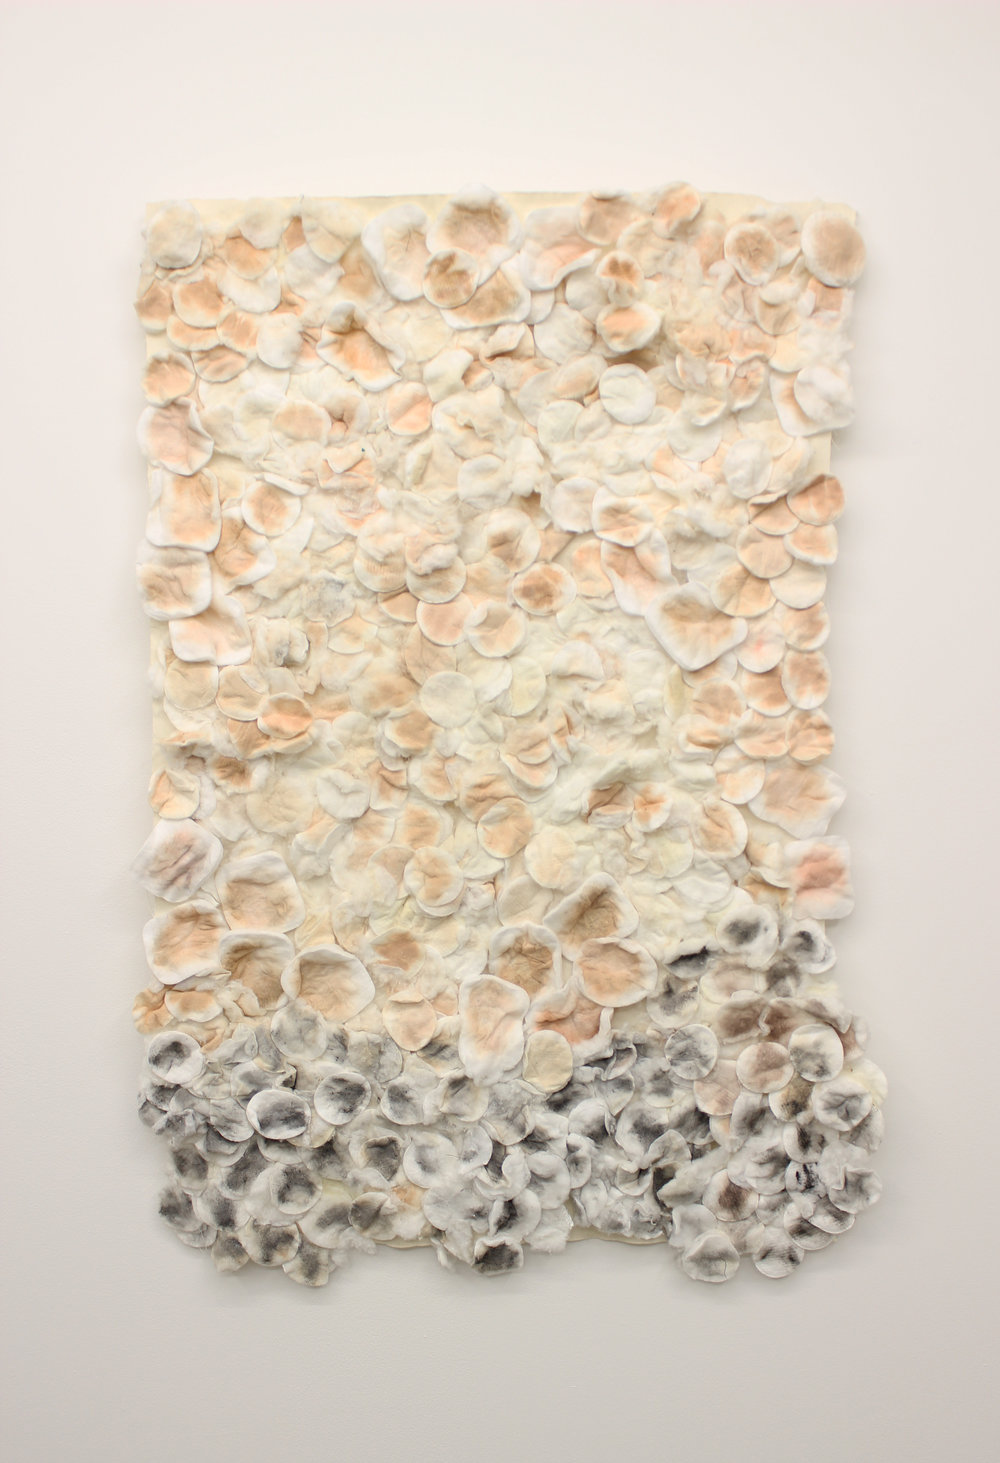 Accumulating, 2018  Canvas, used cotton wool pads, fabric glue